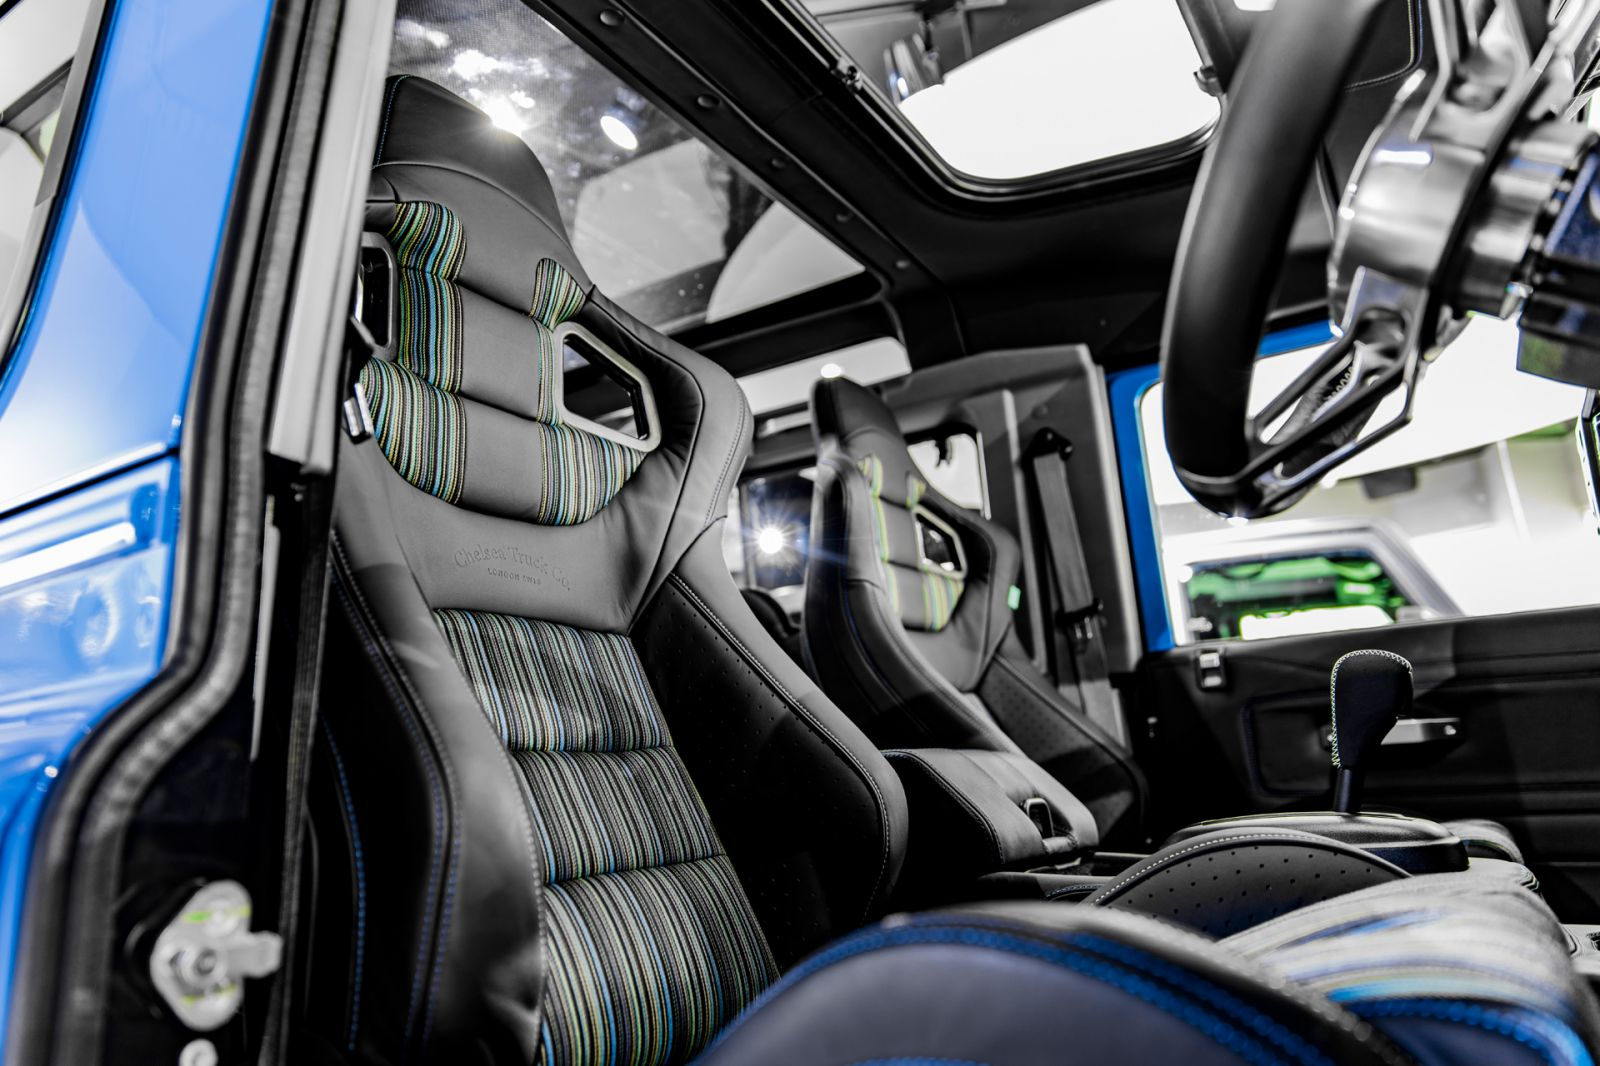 LAND ROVER DEFENDER - CTC WIDE TRACK EDITION INTERIOR